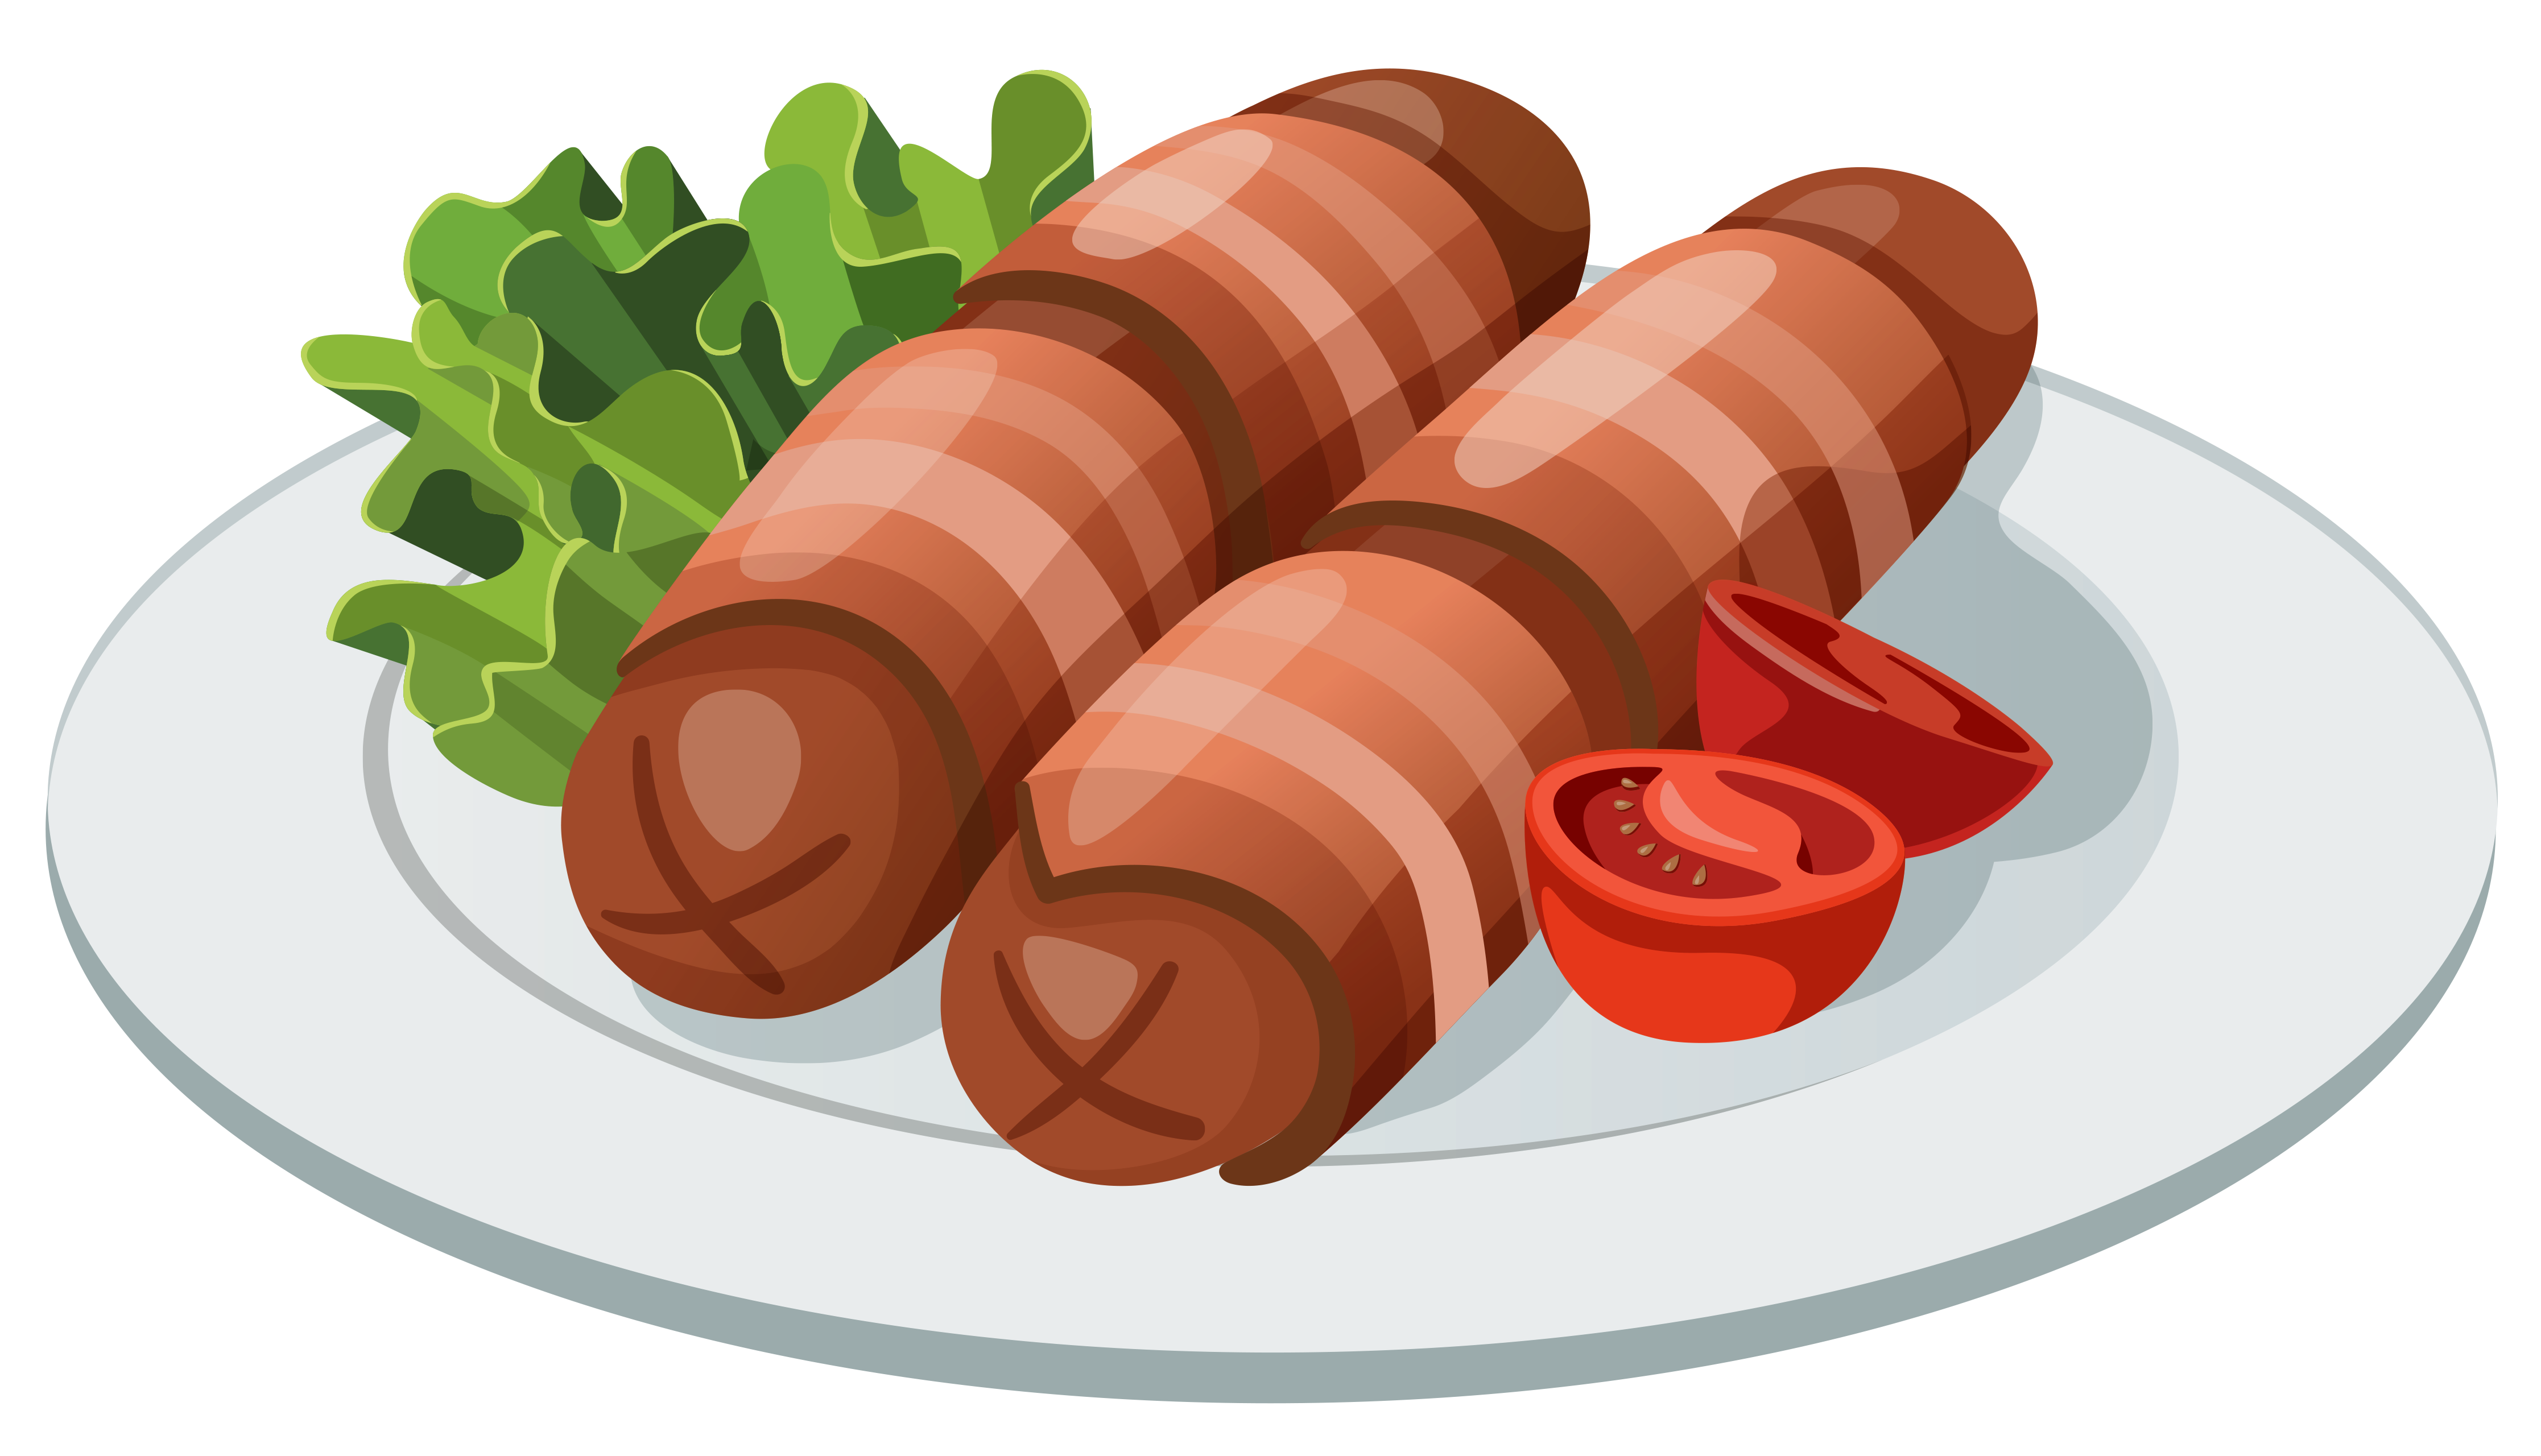 Grilled Sausage Clipart.